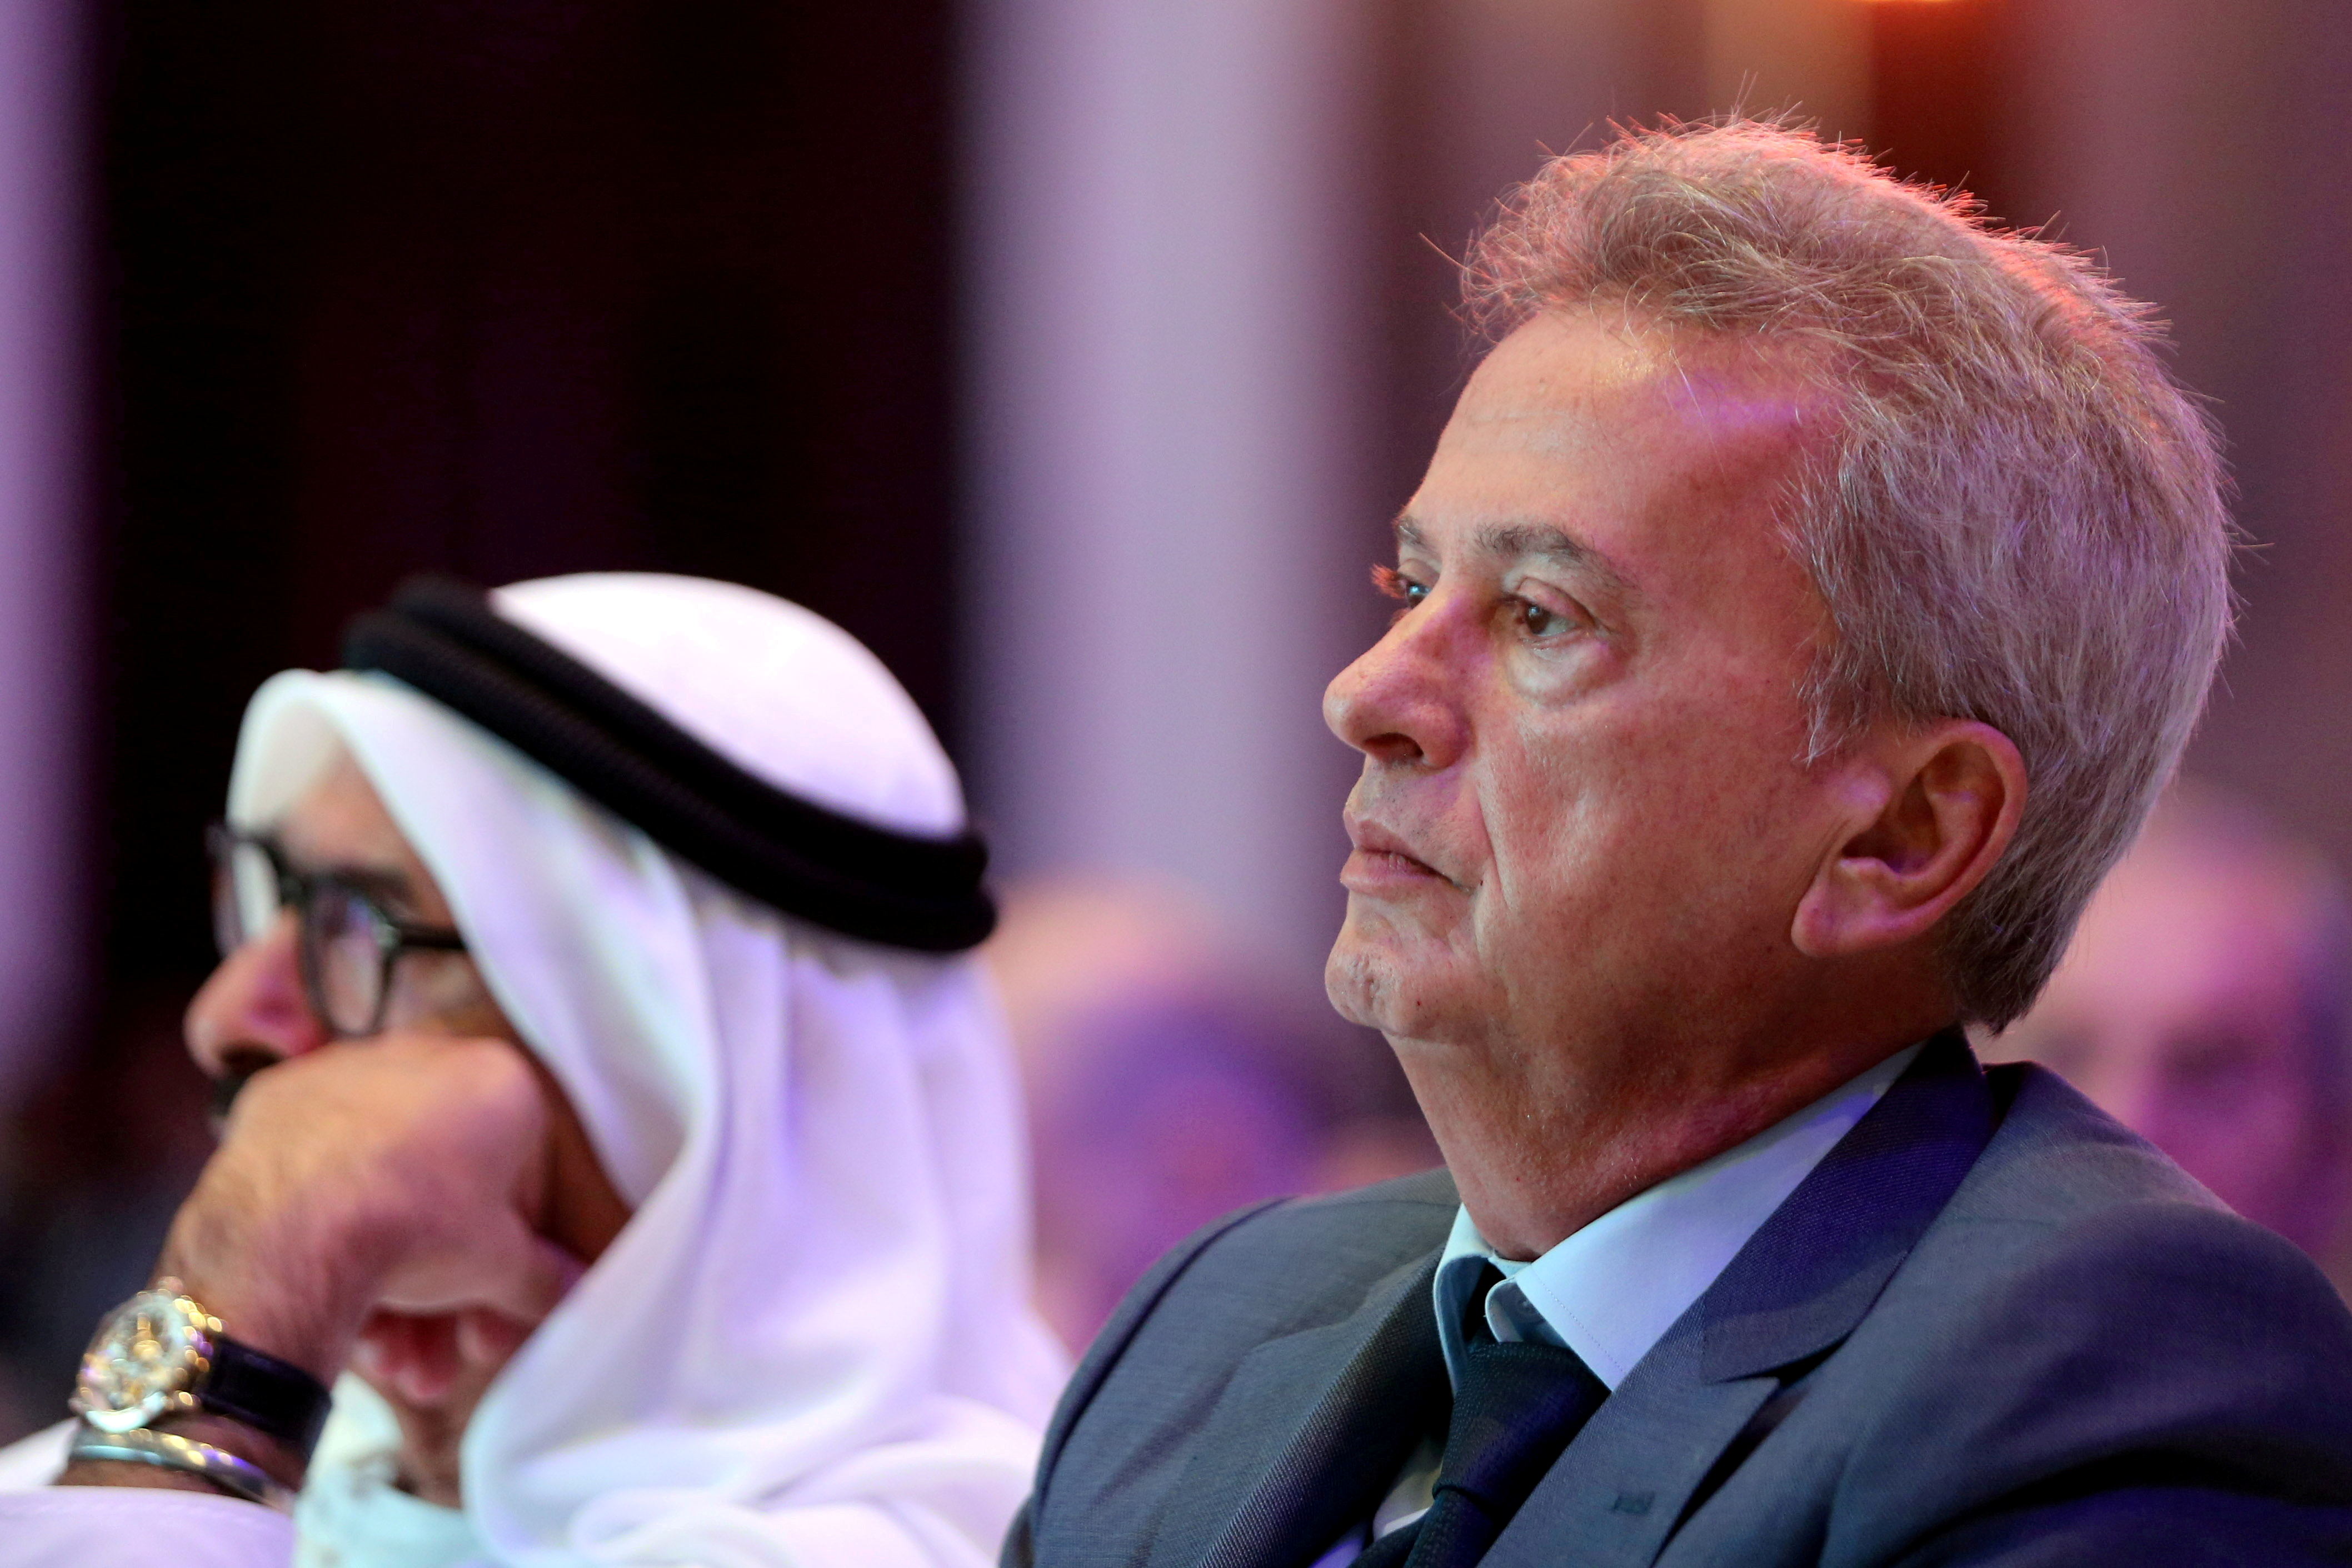 Riad Salameh, Governor of the Central Bank of Lebanon, attends the UAE-Lebanon Investment Forum in Abu Dhabi, UAE, October 7, 2019. REUTERS/Satish Kumar/File Photo